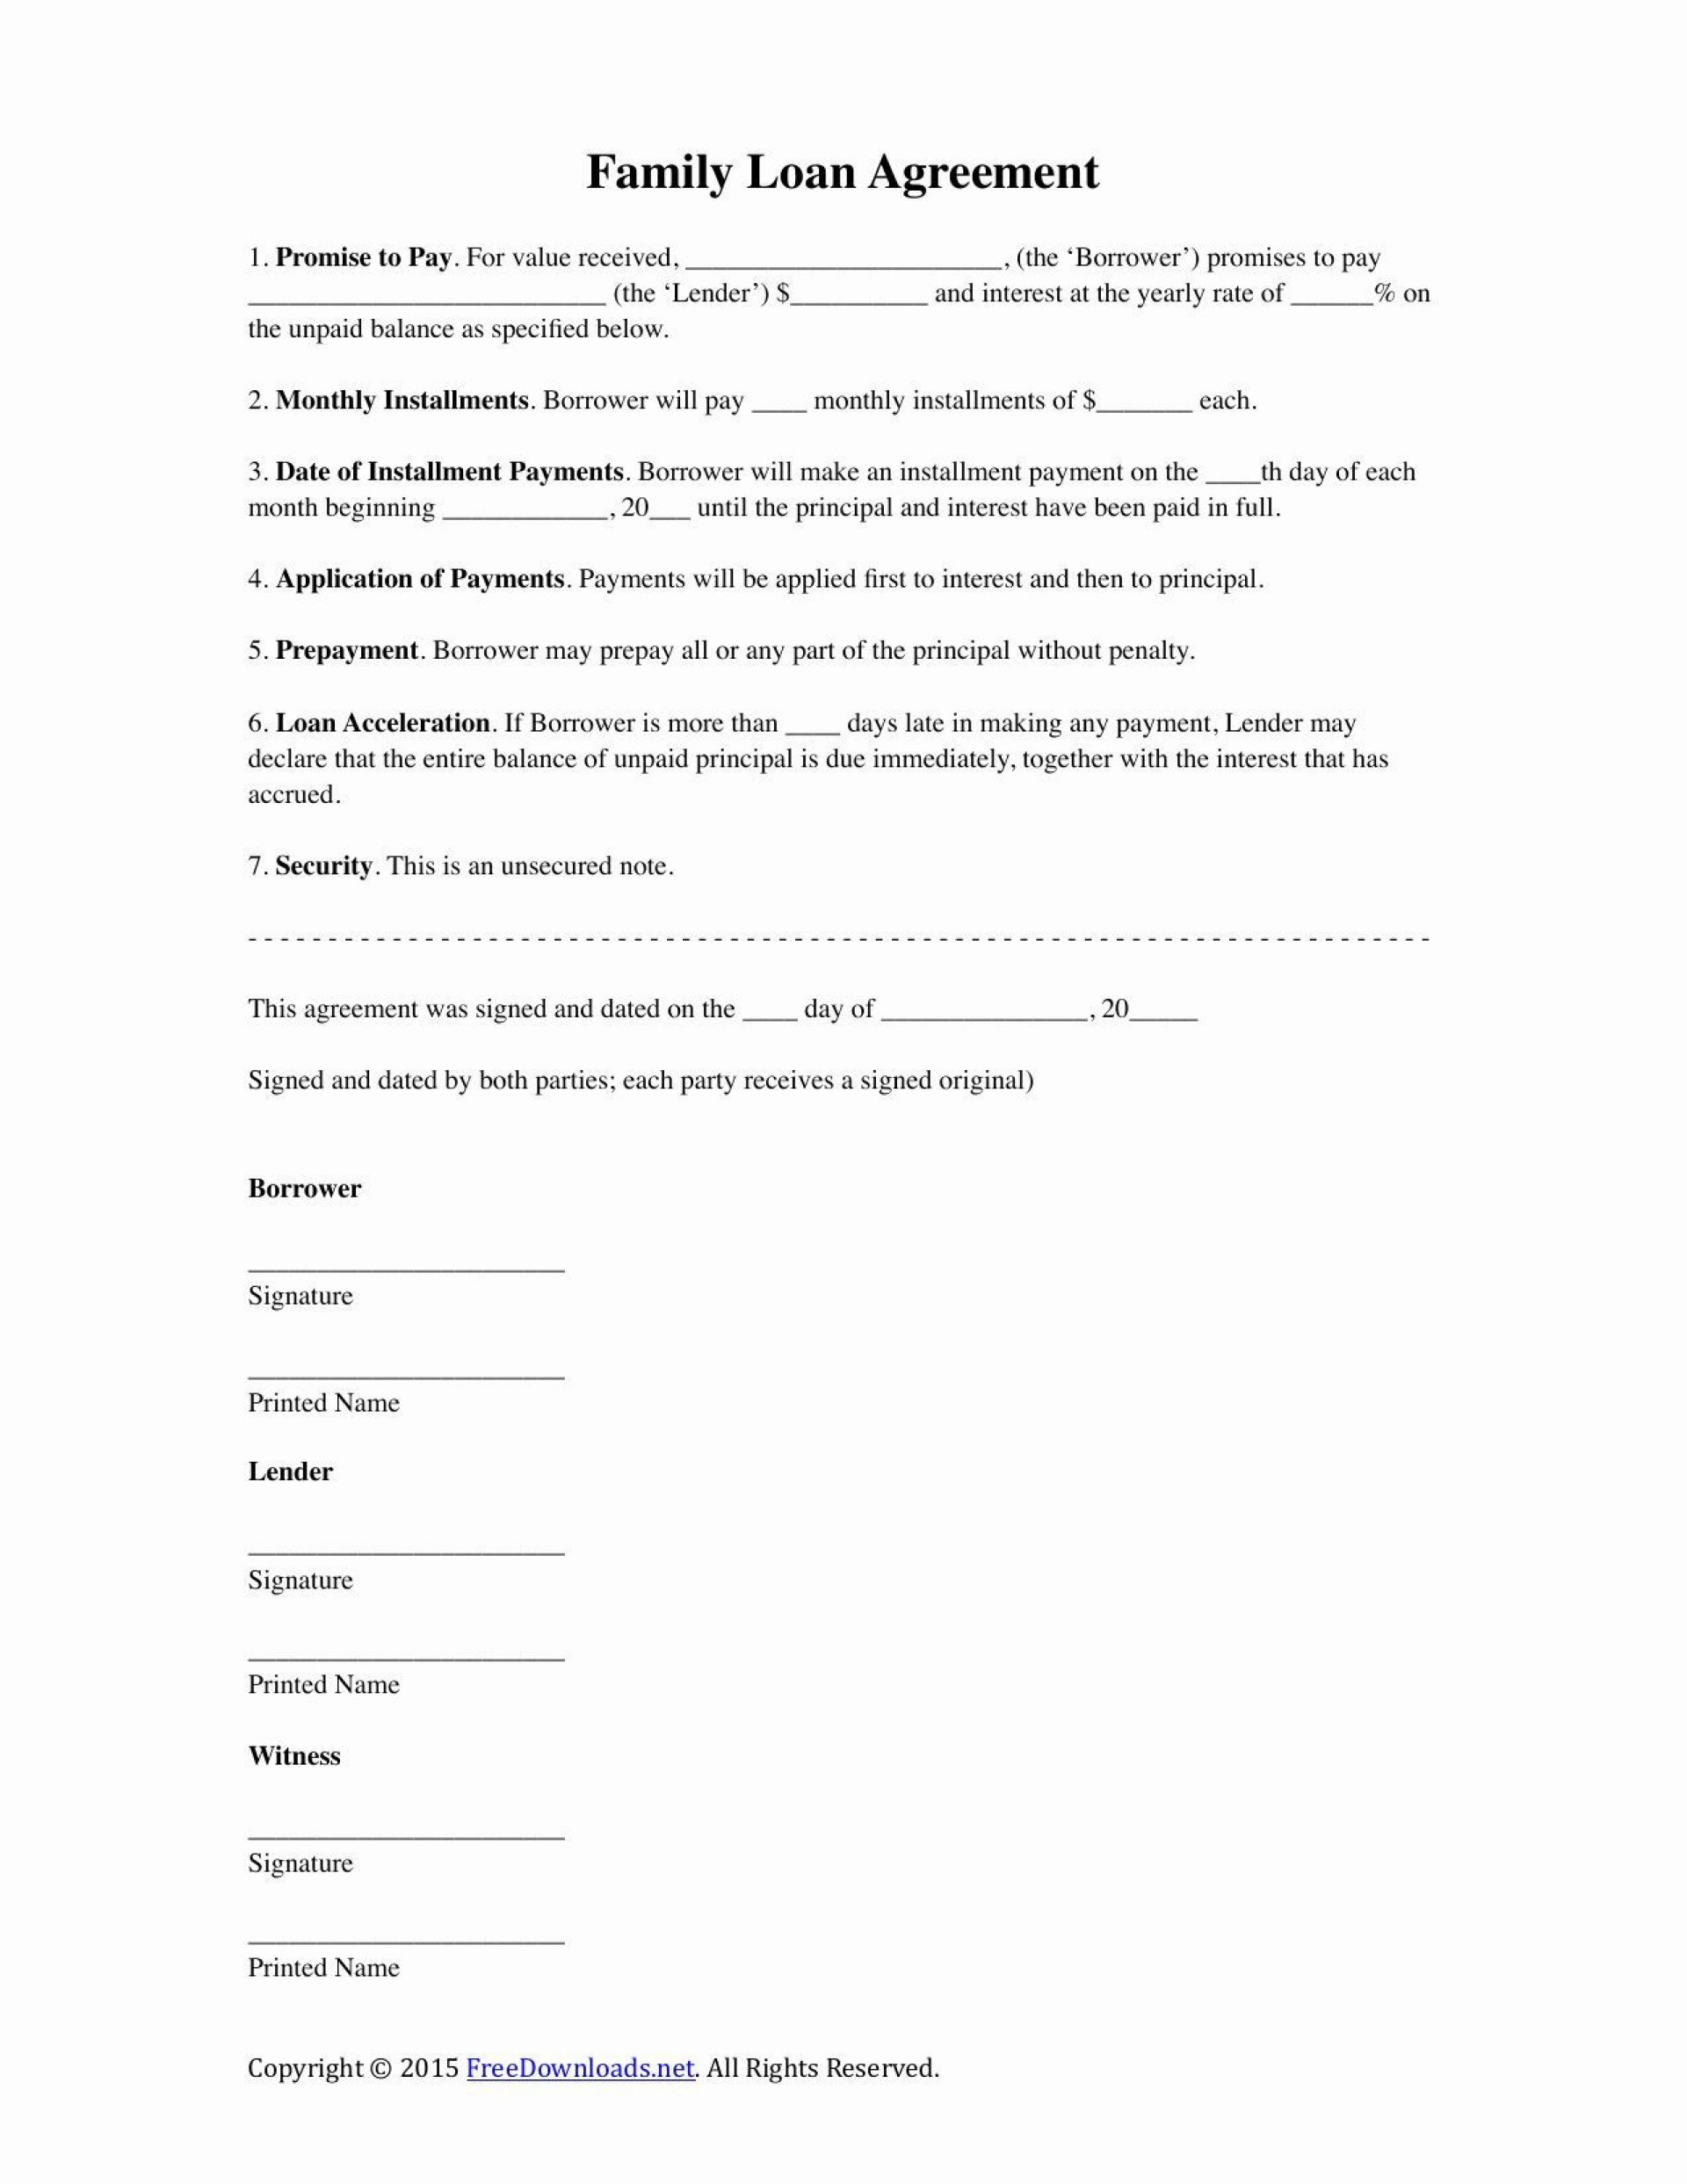 000 Wonderful Family Loan Agreement Format India Idea 1920